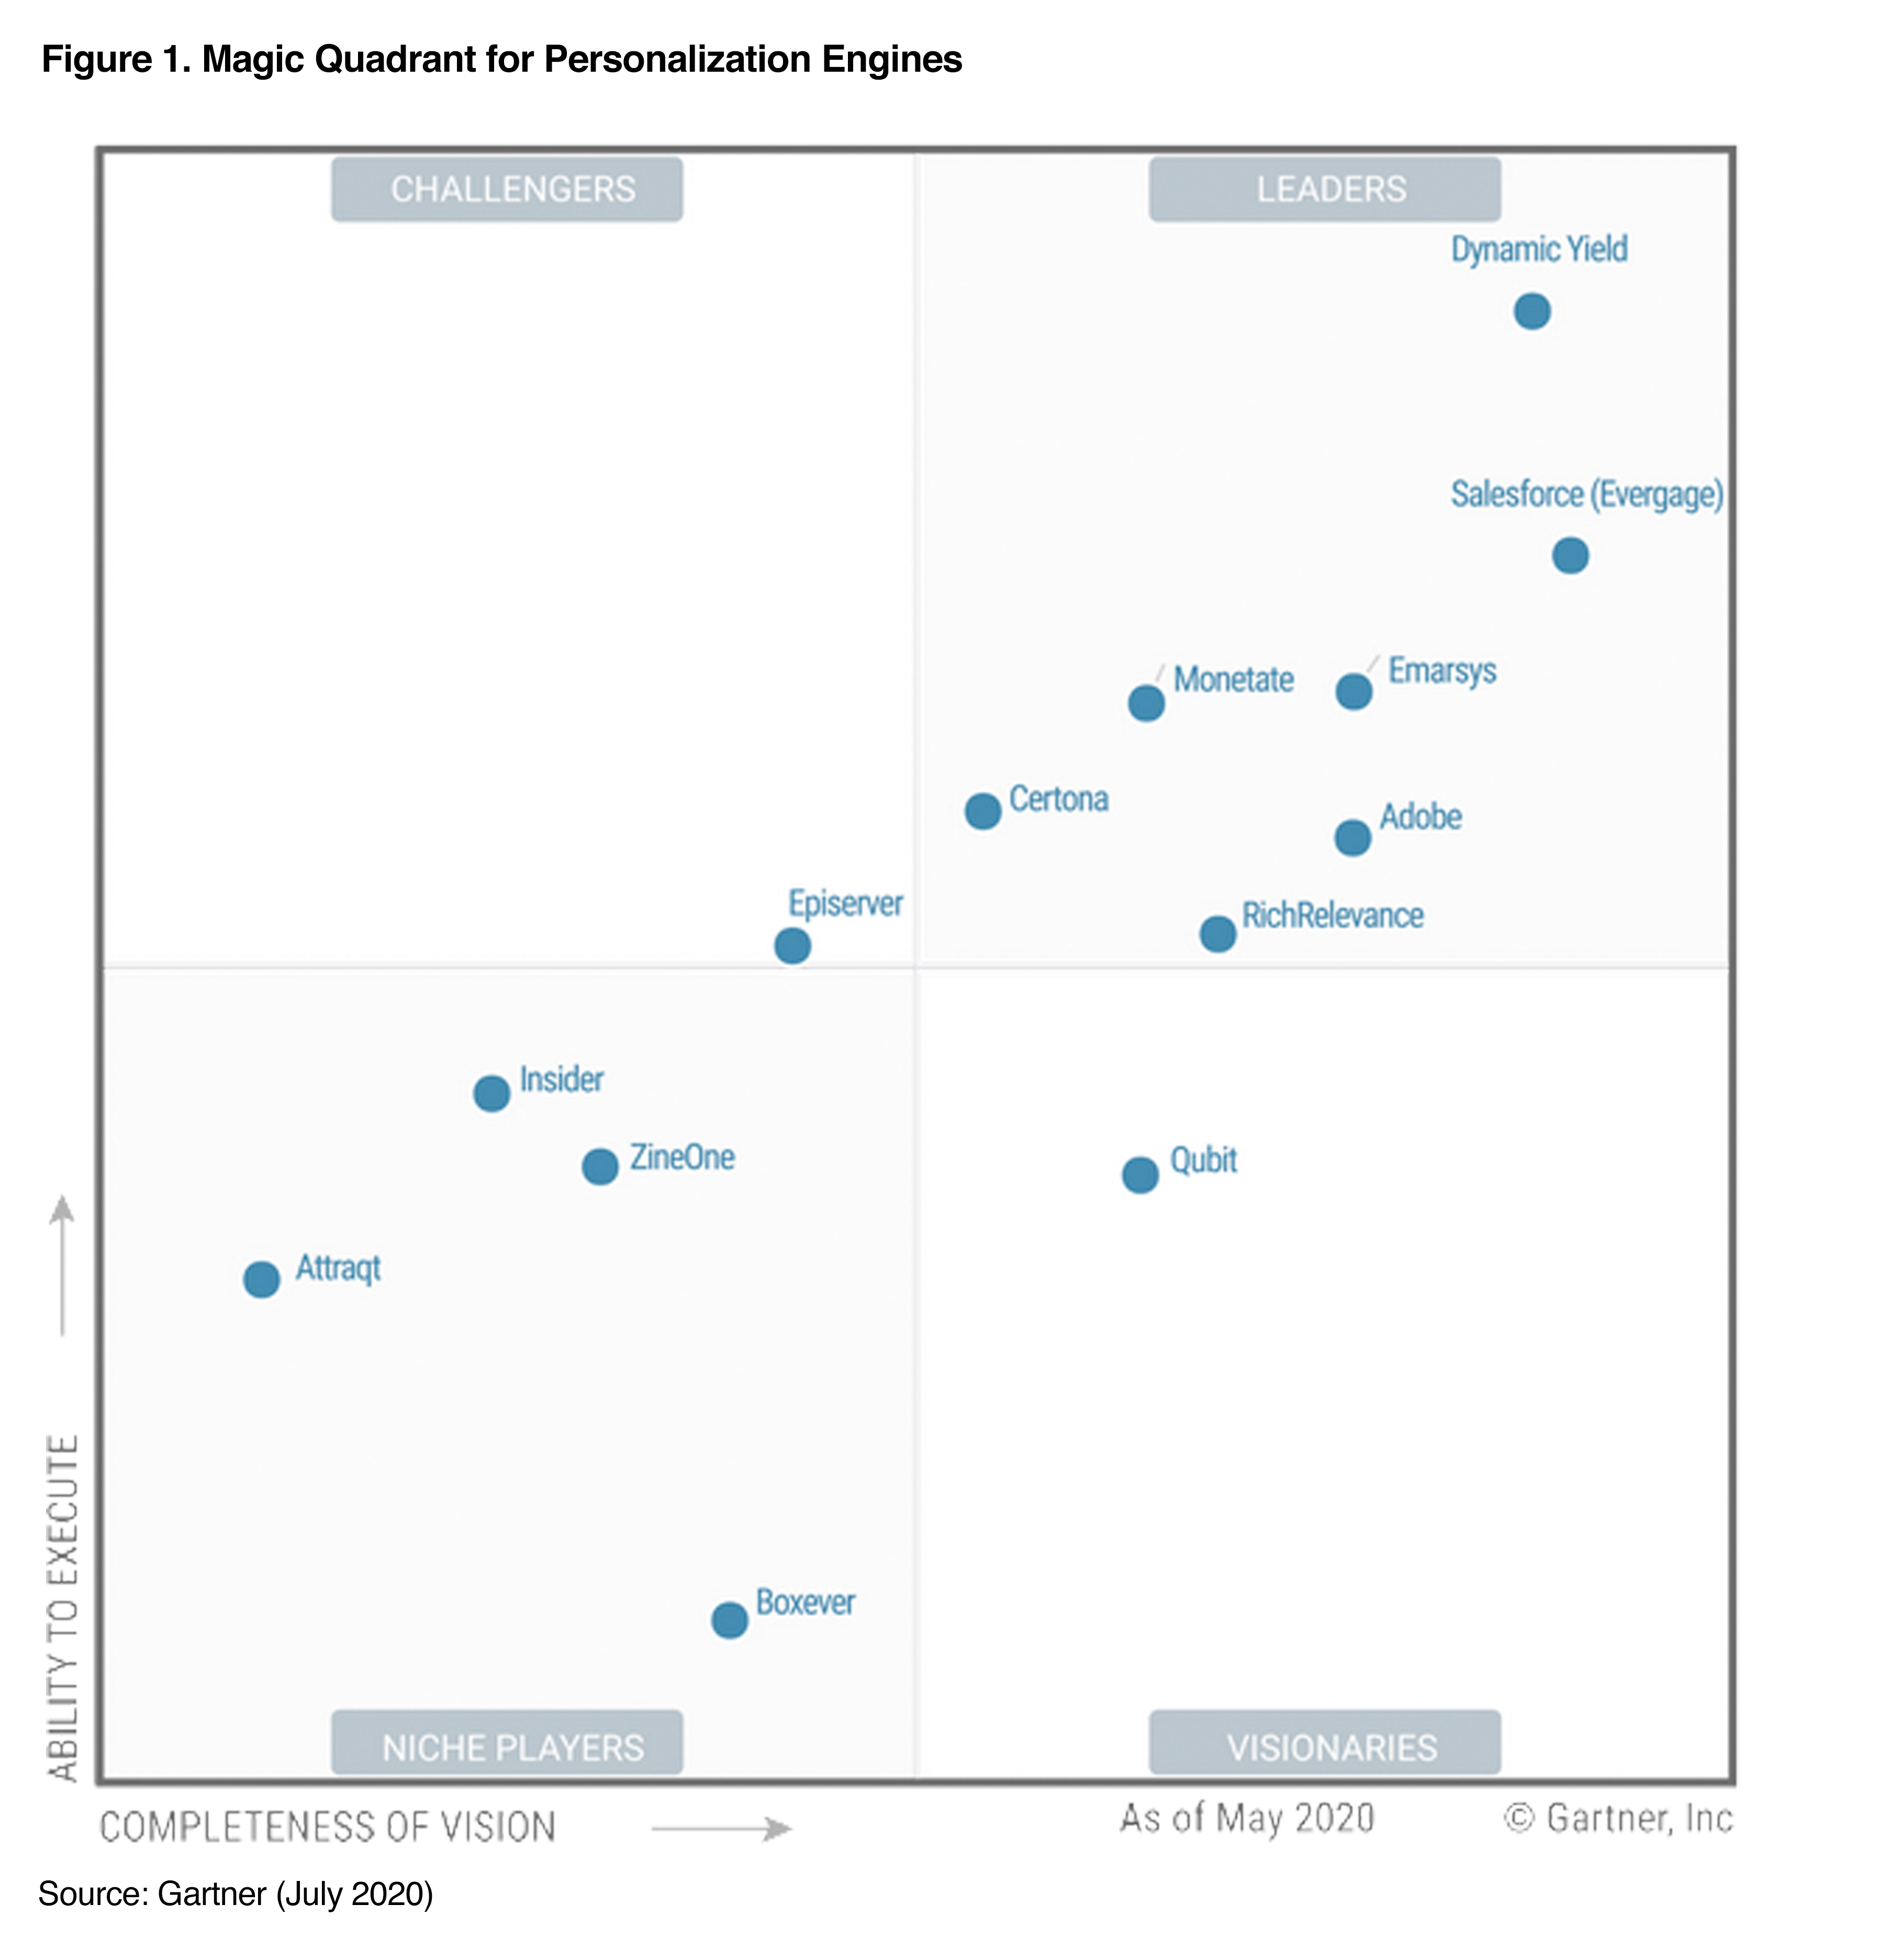 Dynamic Yield positioned as a Leader in Gartner's 2020 Magic Quadrant for Personalization Engines